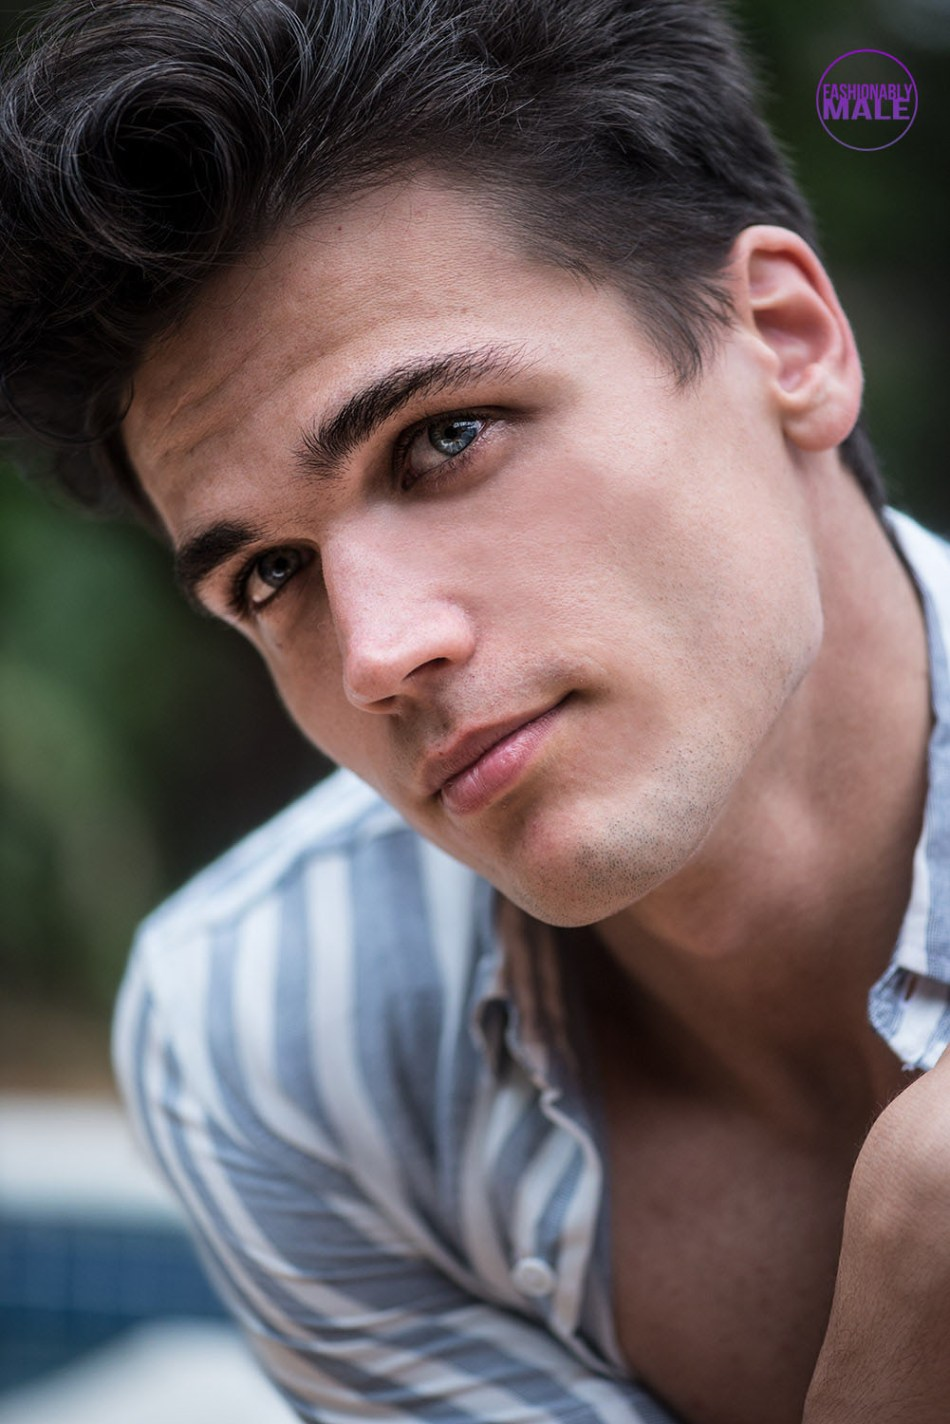 Explore the Talent of Model & Actor Anatolii Shtapenko in pics by Walter Tabayoyong